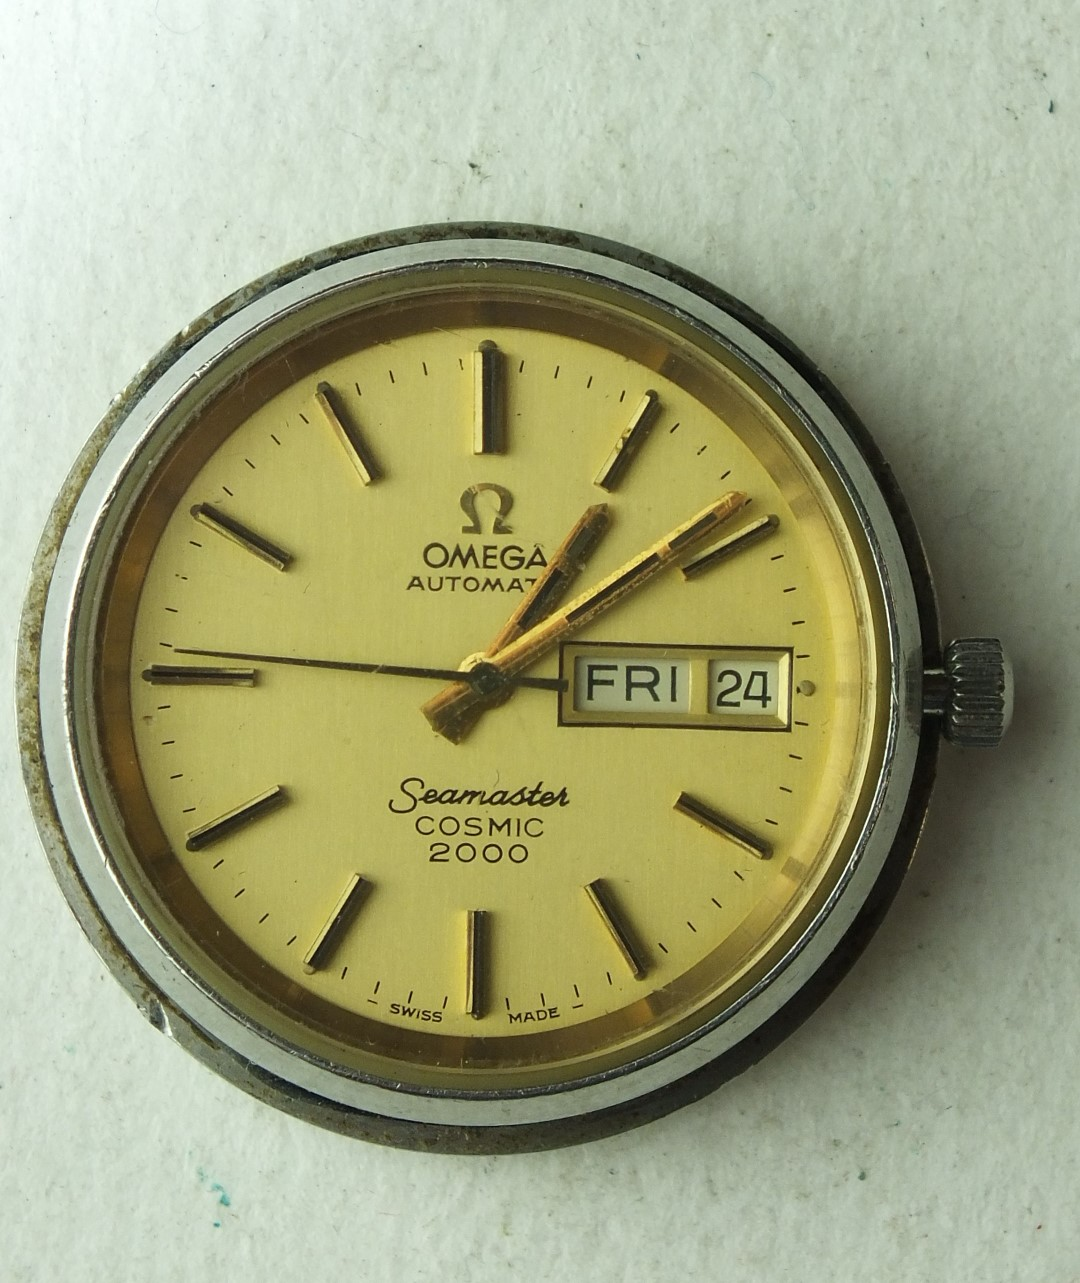 Lot 262 - Omega, Seamaster Cosmic 2000 automatic gold-plated gentleman's wrist watch, the circular champagne